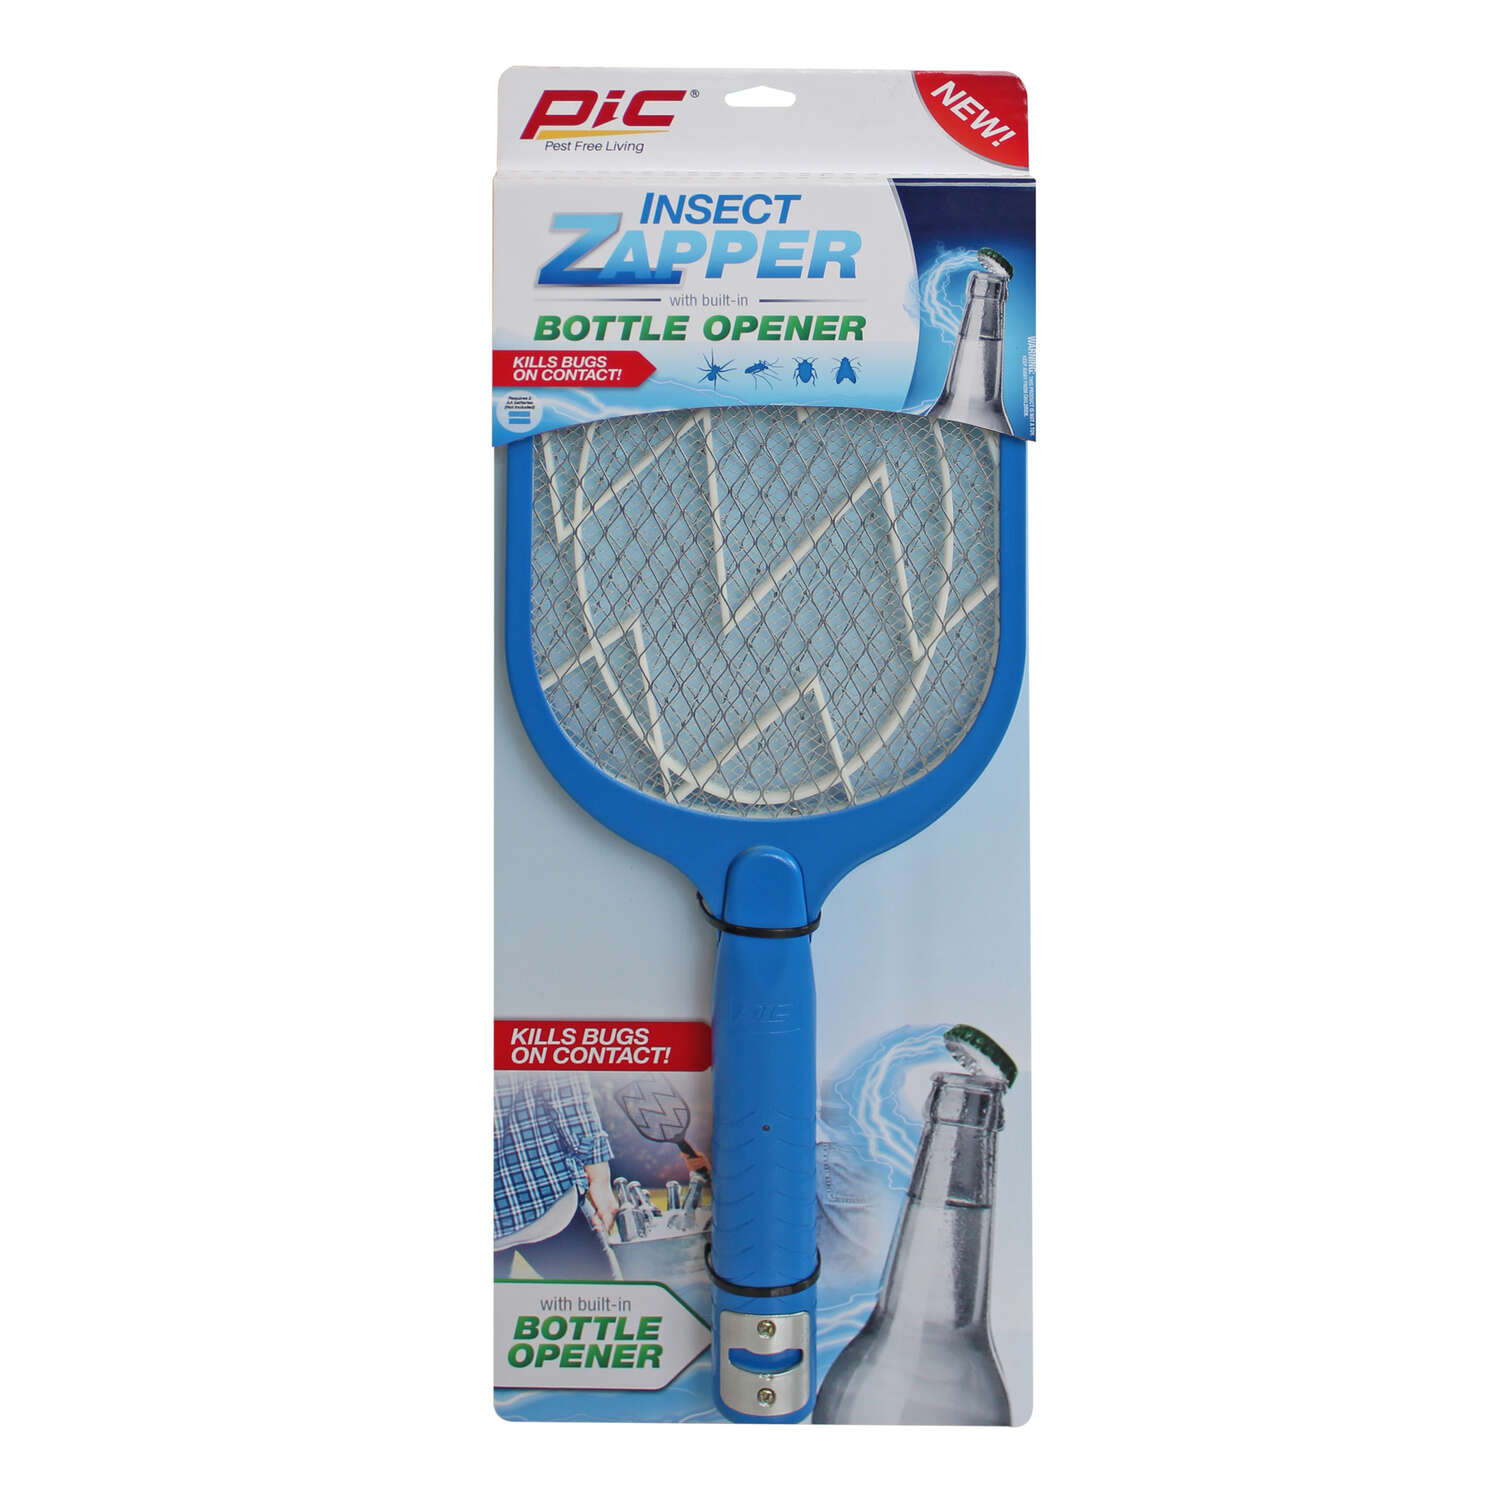 PIC Insect Zapper